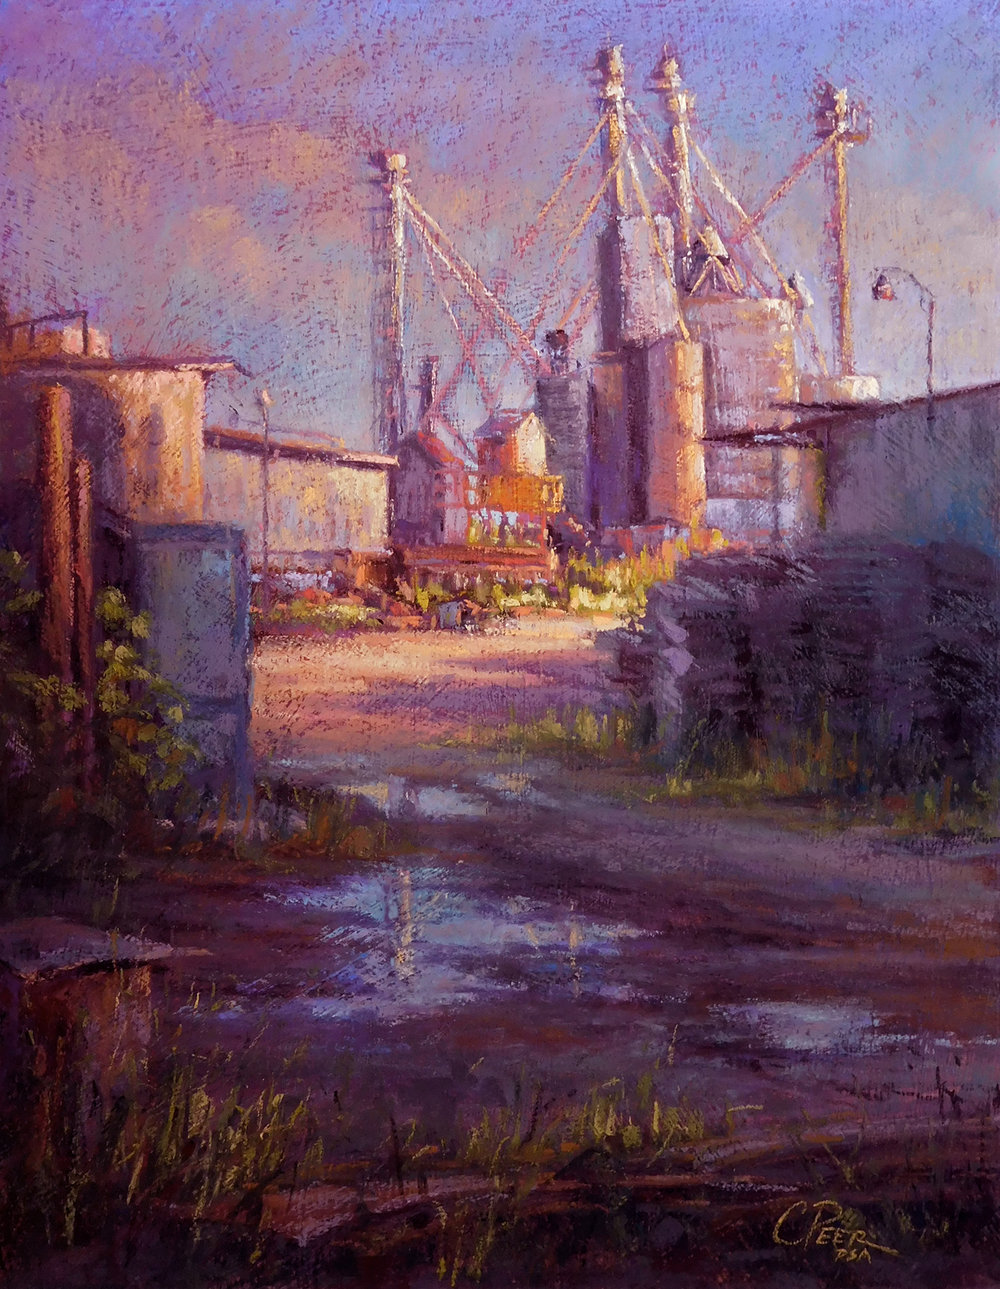 "October ""Scrap Metal, Precious Metal"" was selected to be part of the International Association of Pastel Societies' 30th Juried Exhibition in Albuquerque NM this summer.  This exhibition is in conjunction with its international convention, which happens every two years."